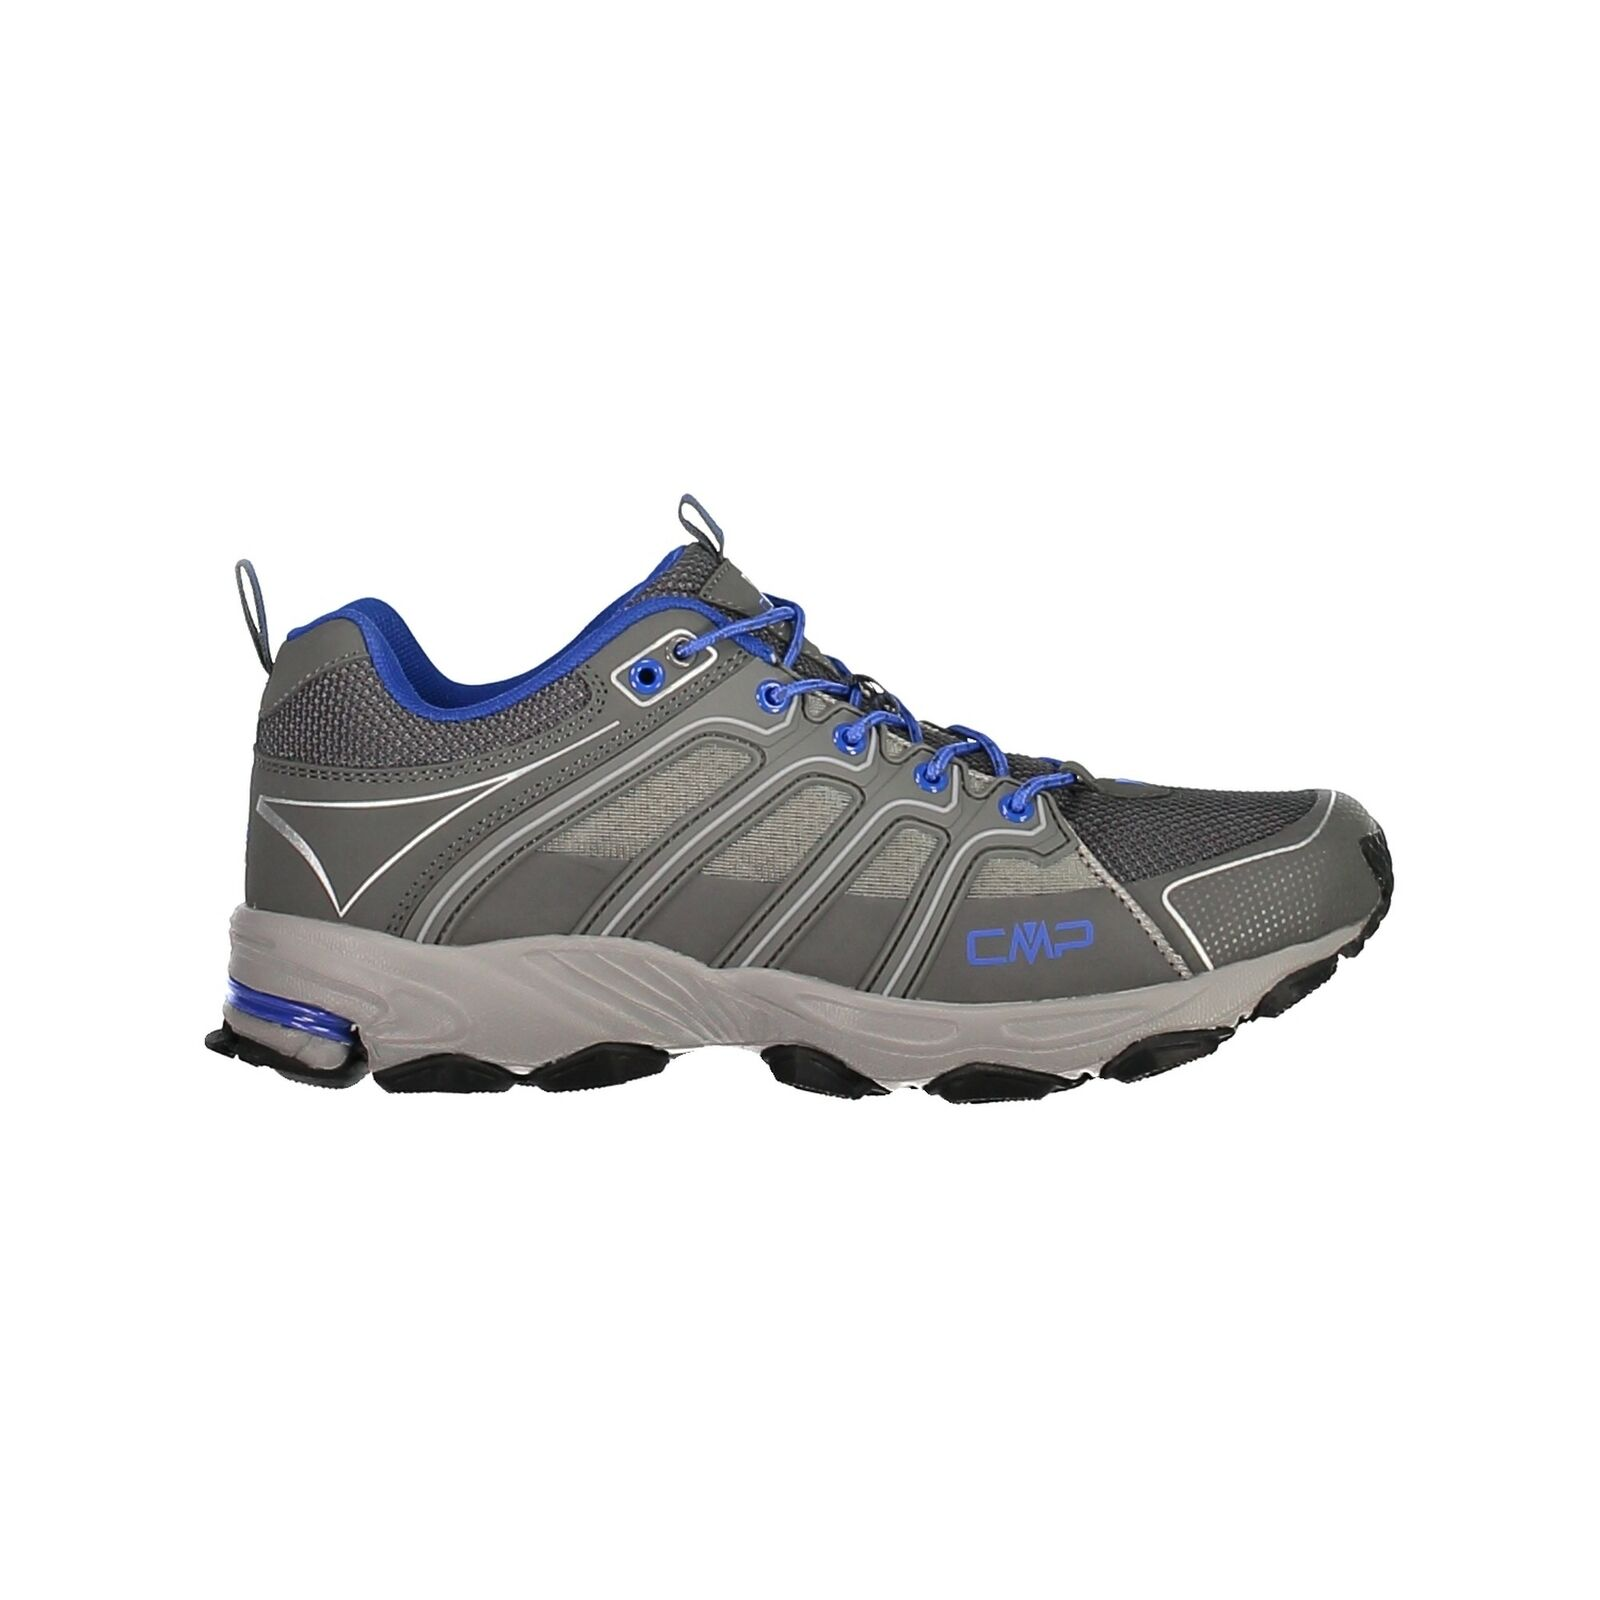 CMP Running Sports shoes Agena Trail shoes  Grey Light Plain Colour Mesh  new products novelty items